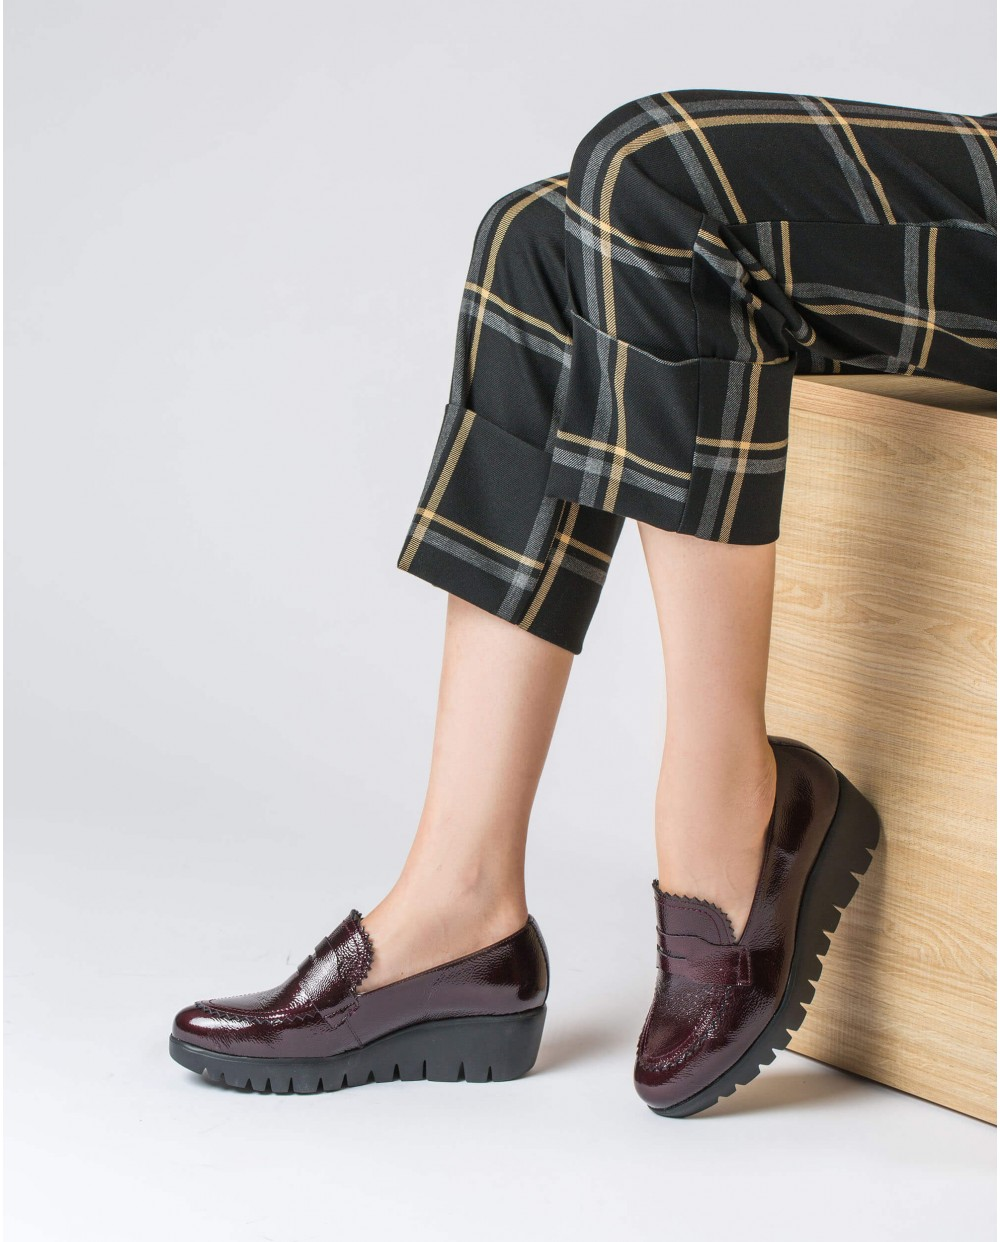 Wonders-Outlet-Wedge shoe with flap